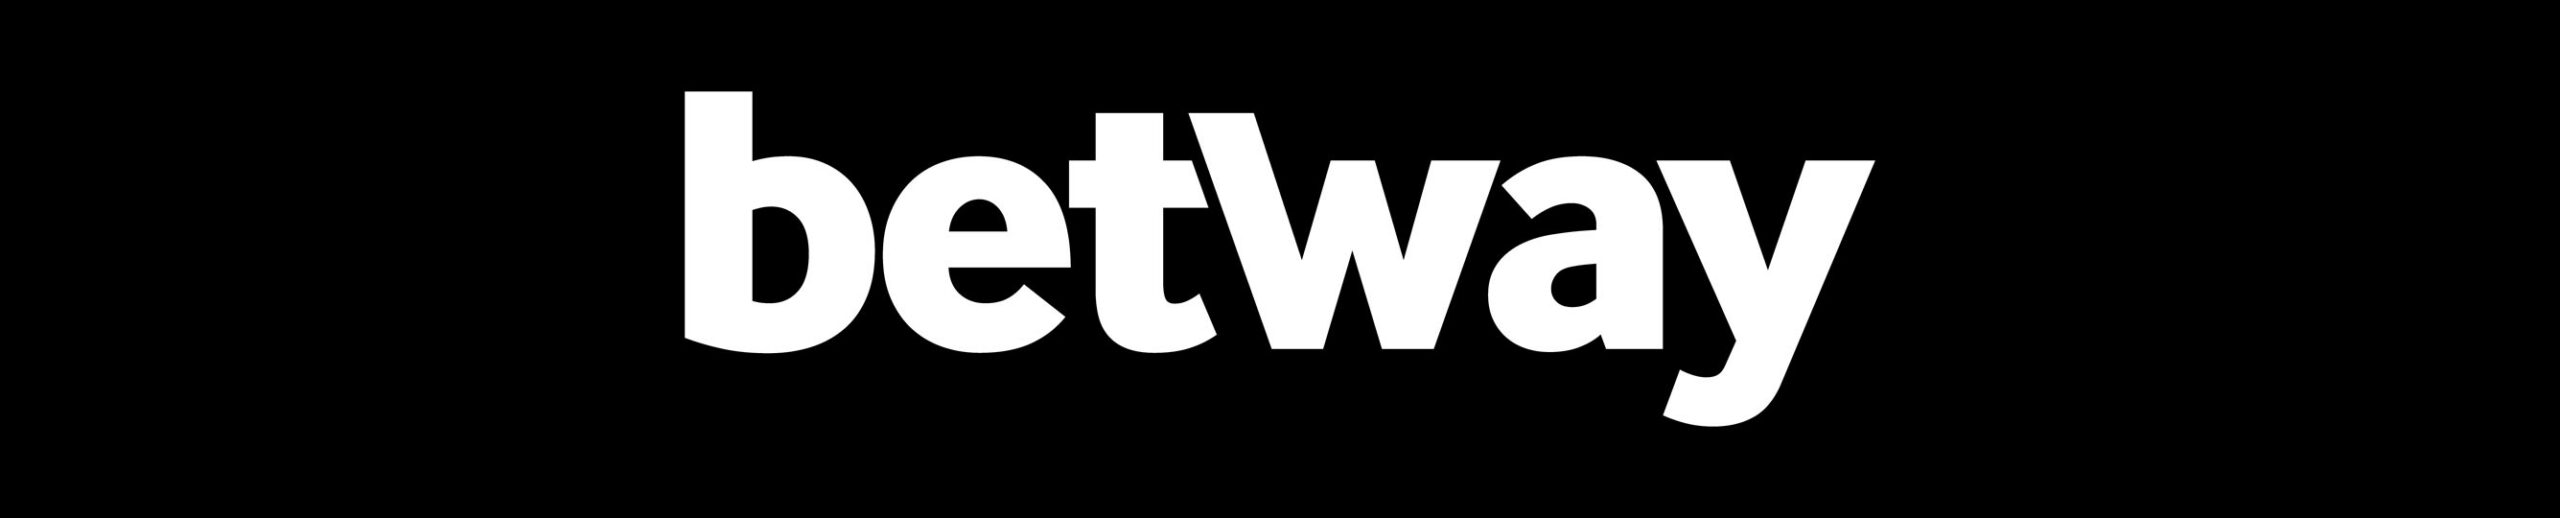 Betway-Casino-Featured-Image